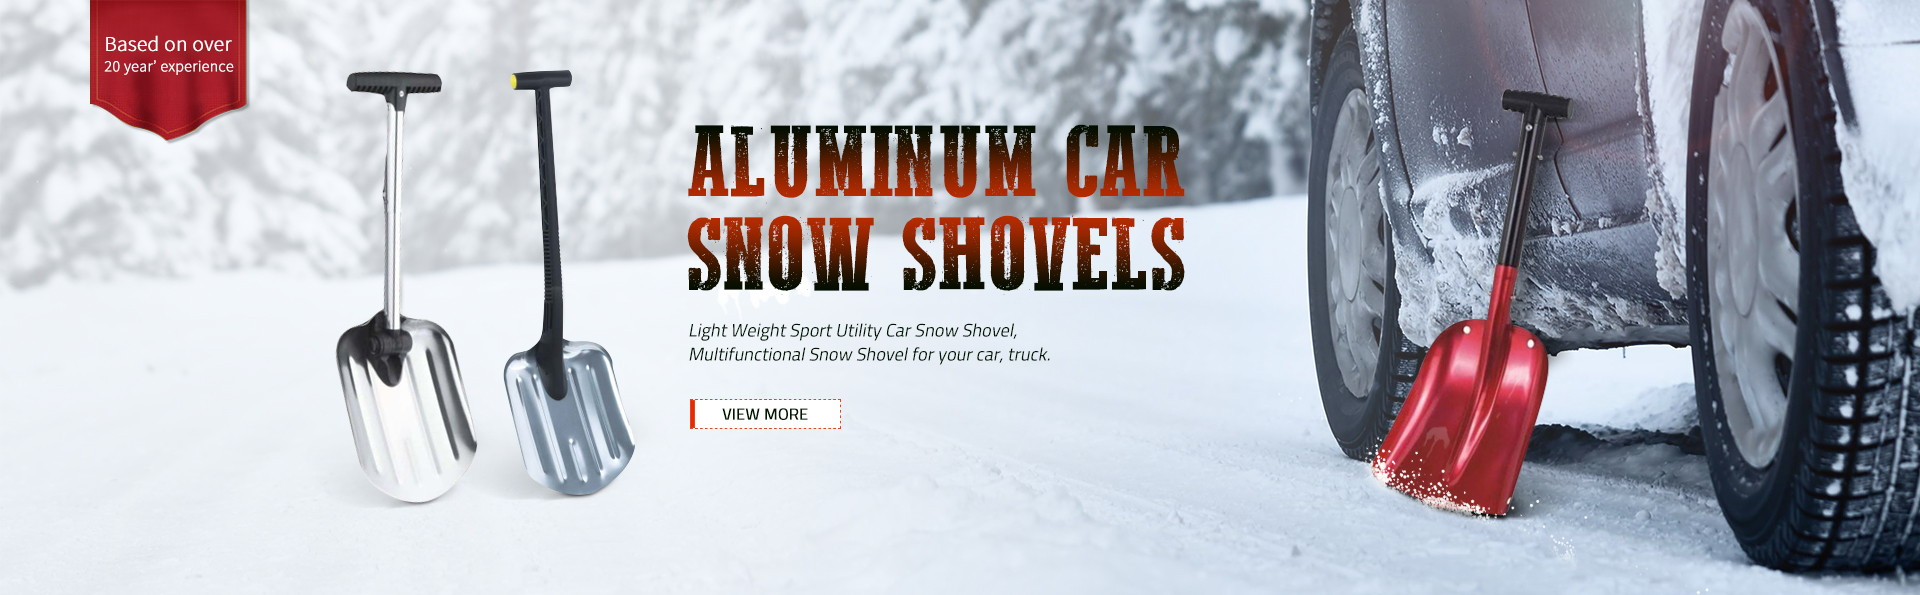 Aluminum car snow shovels